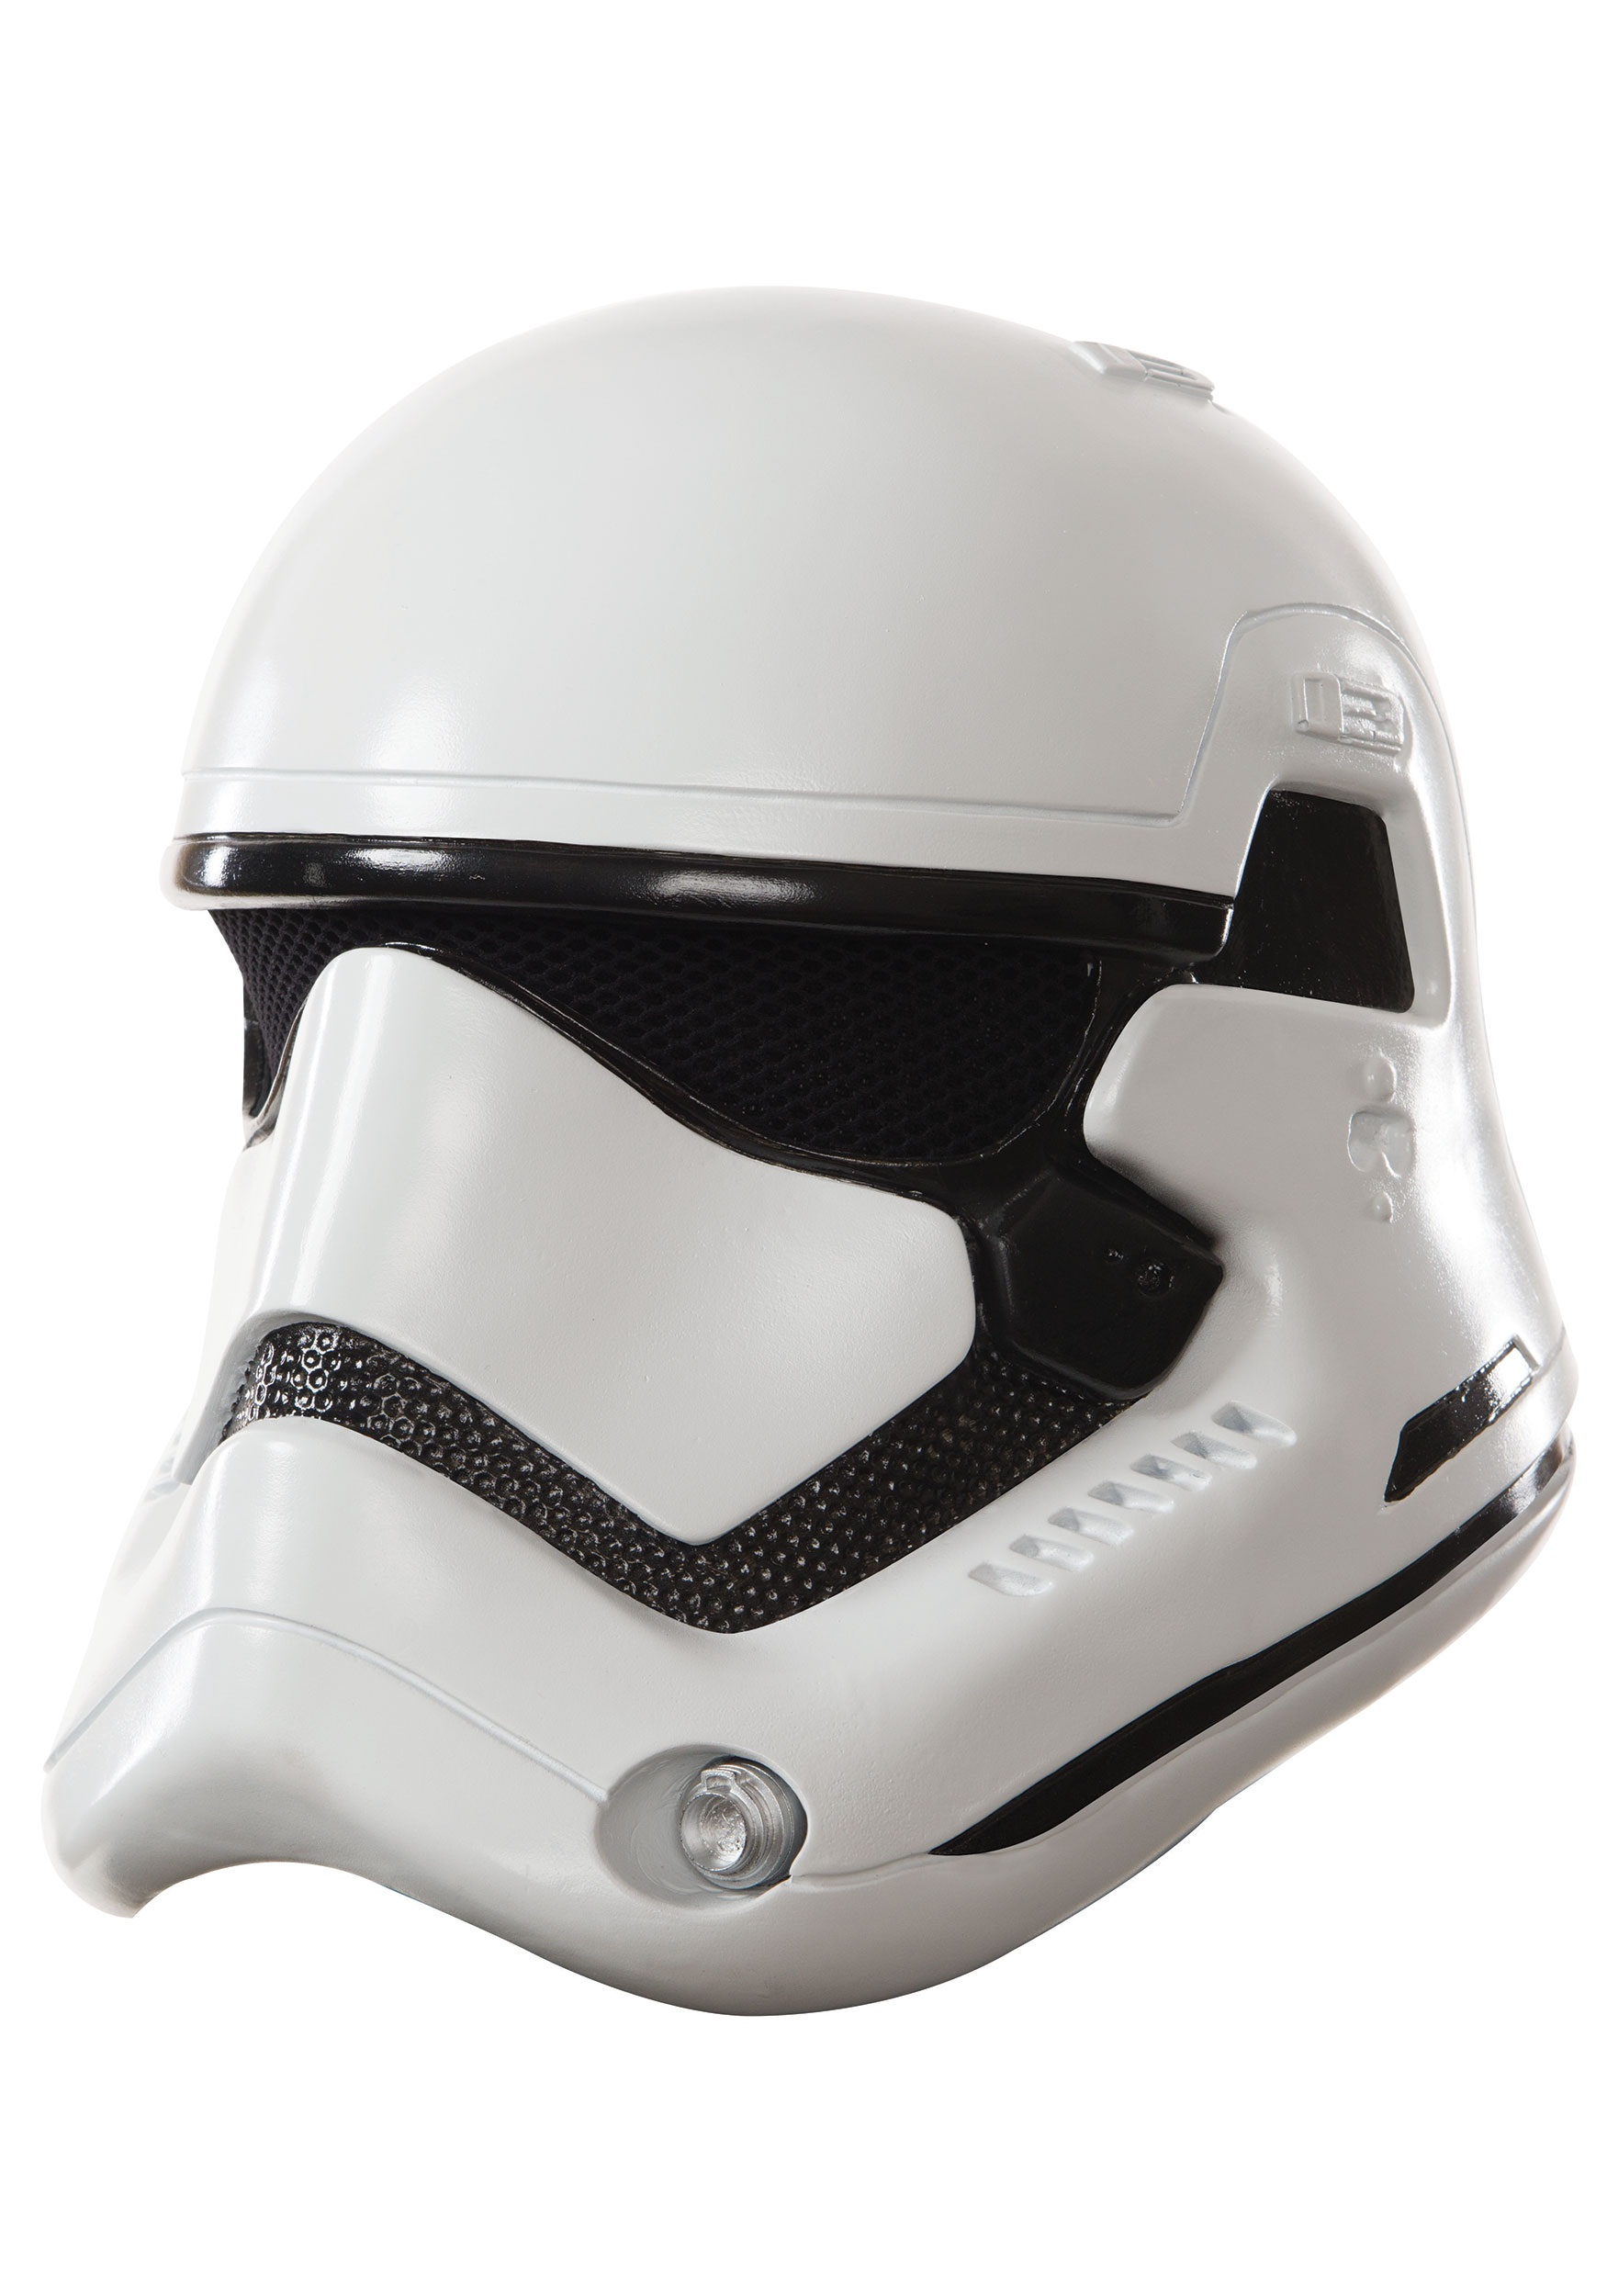 Adult Deluxe Stormtrooper Helmet from Star Wars Episode 7